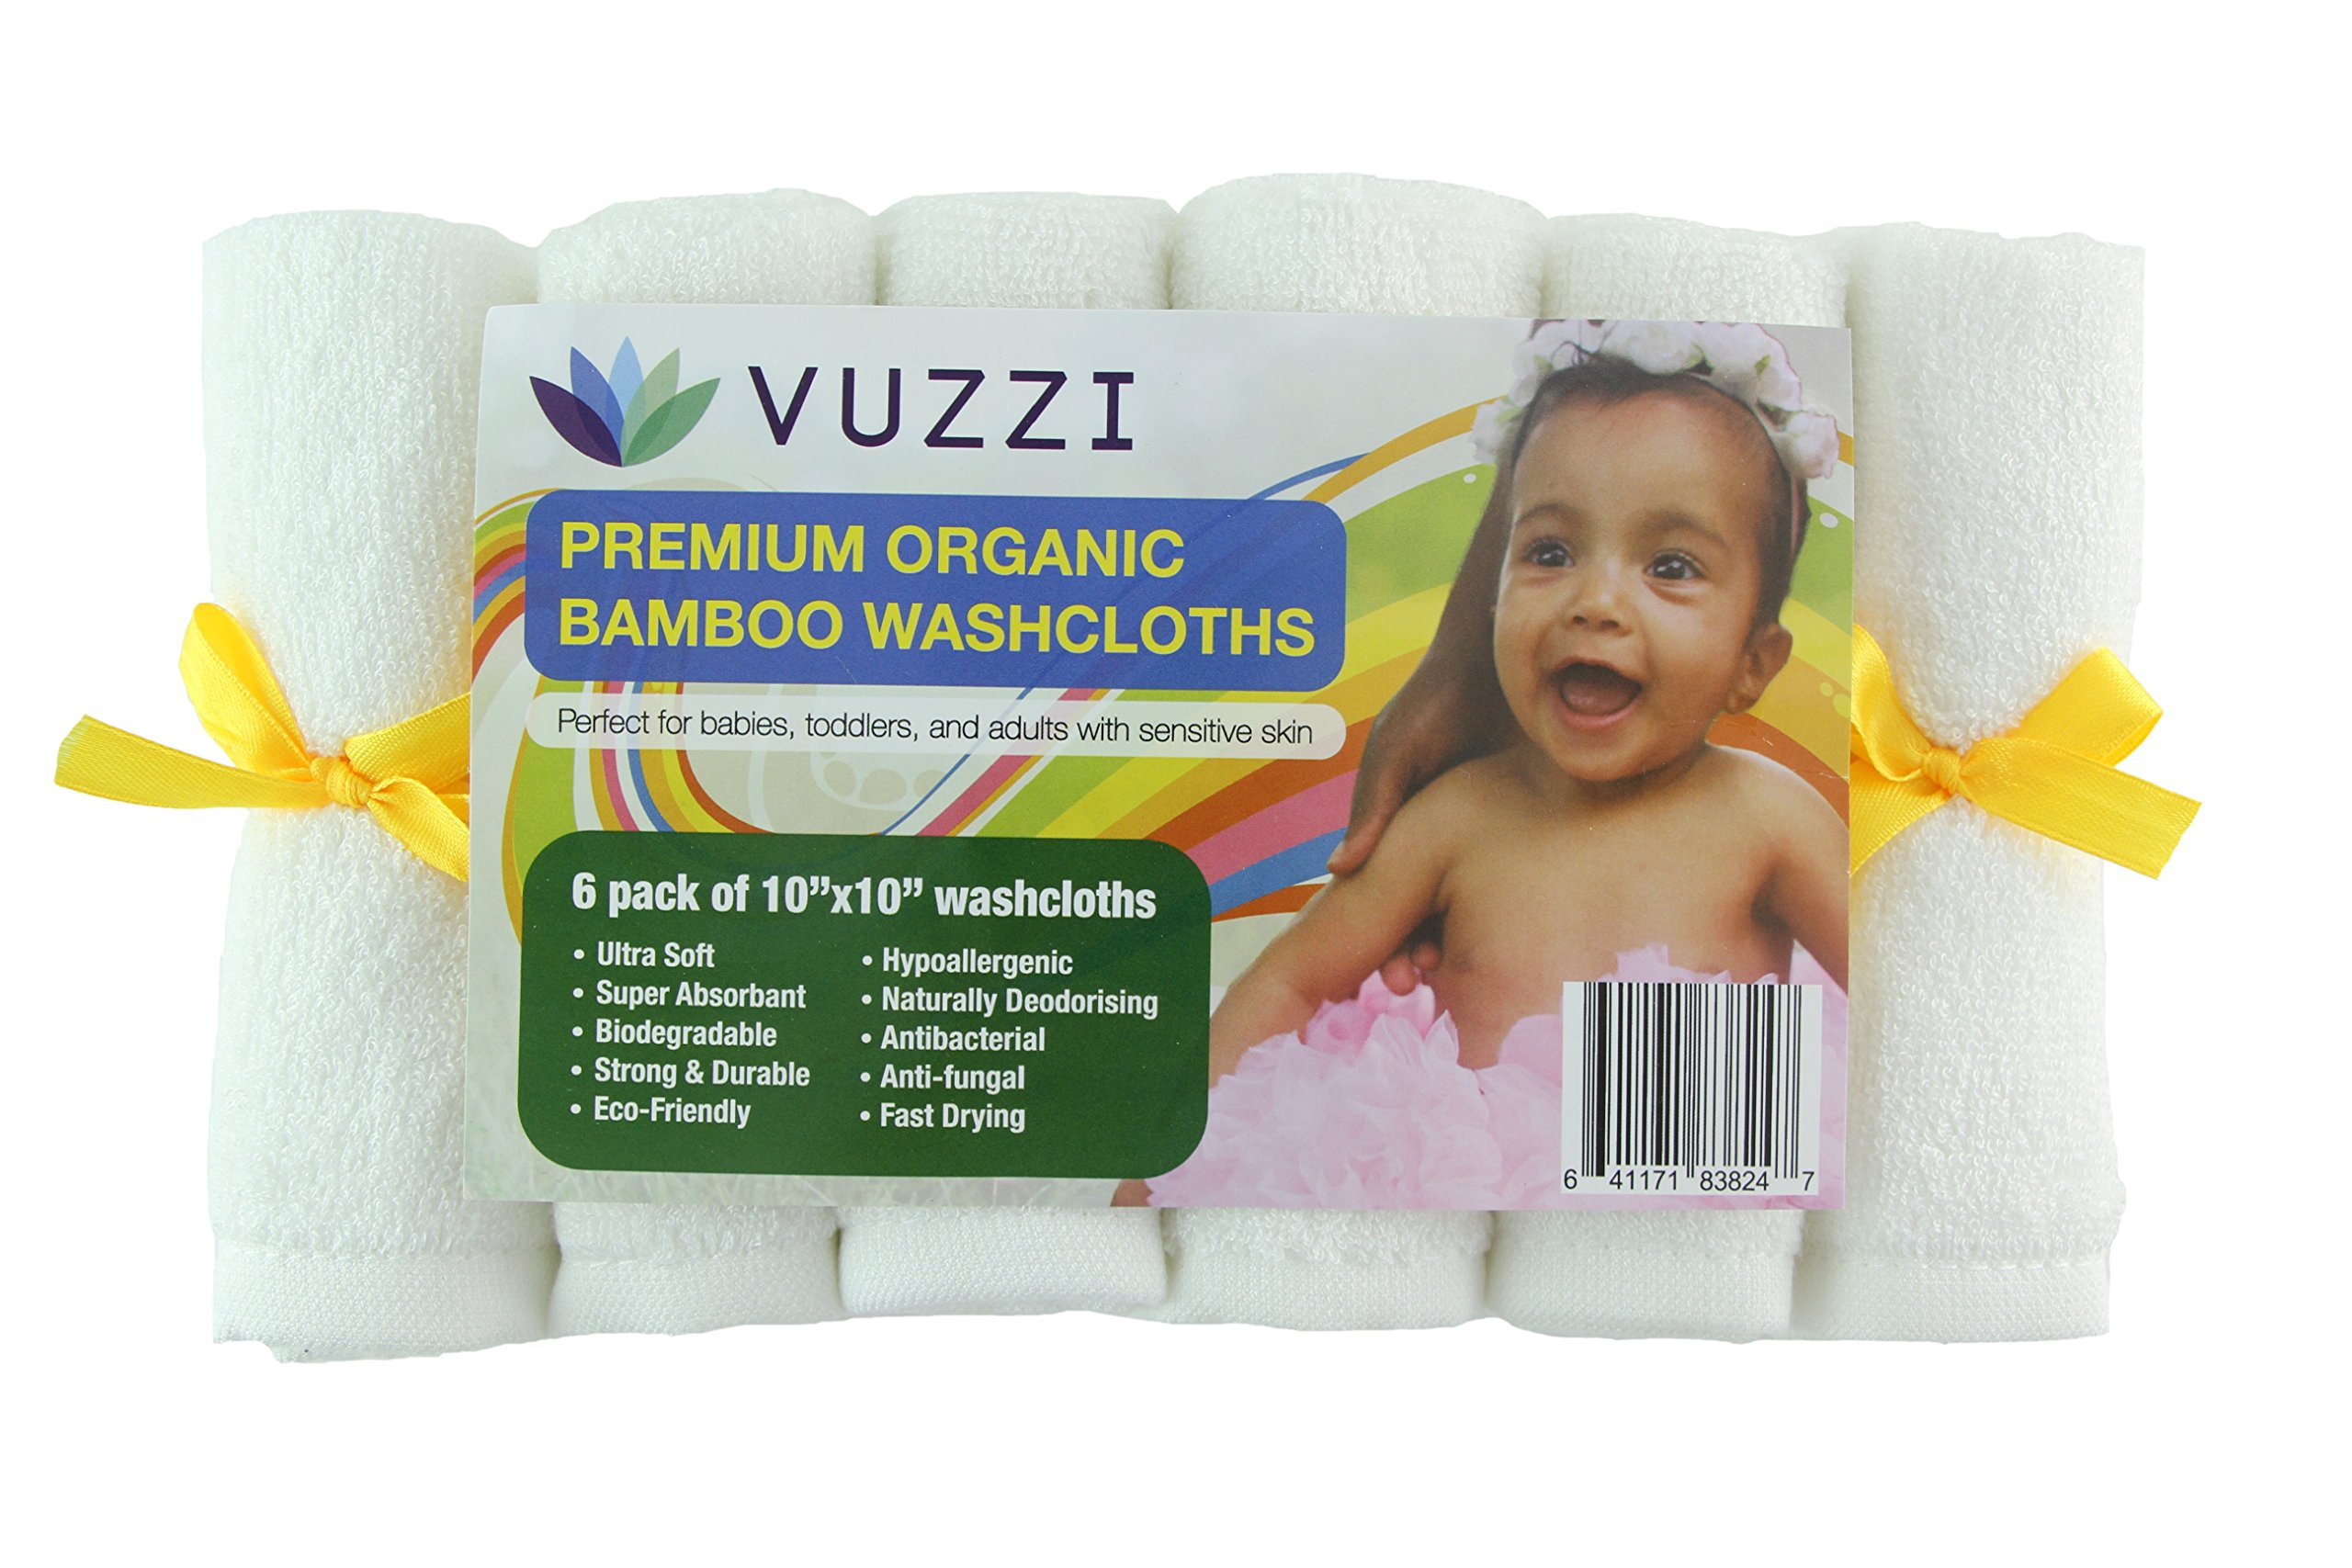 Organic Baby Washcloths (6 Pack) - Large 10''x10'', Premium, Ultra Soft, Super Abosorbant, Dual Sided, Reusable, Hypoallengenic, Perfect for Sensitive Skin by Vuzzi